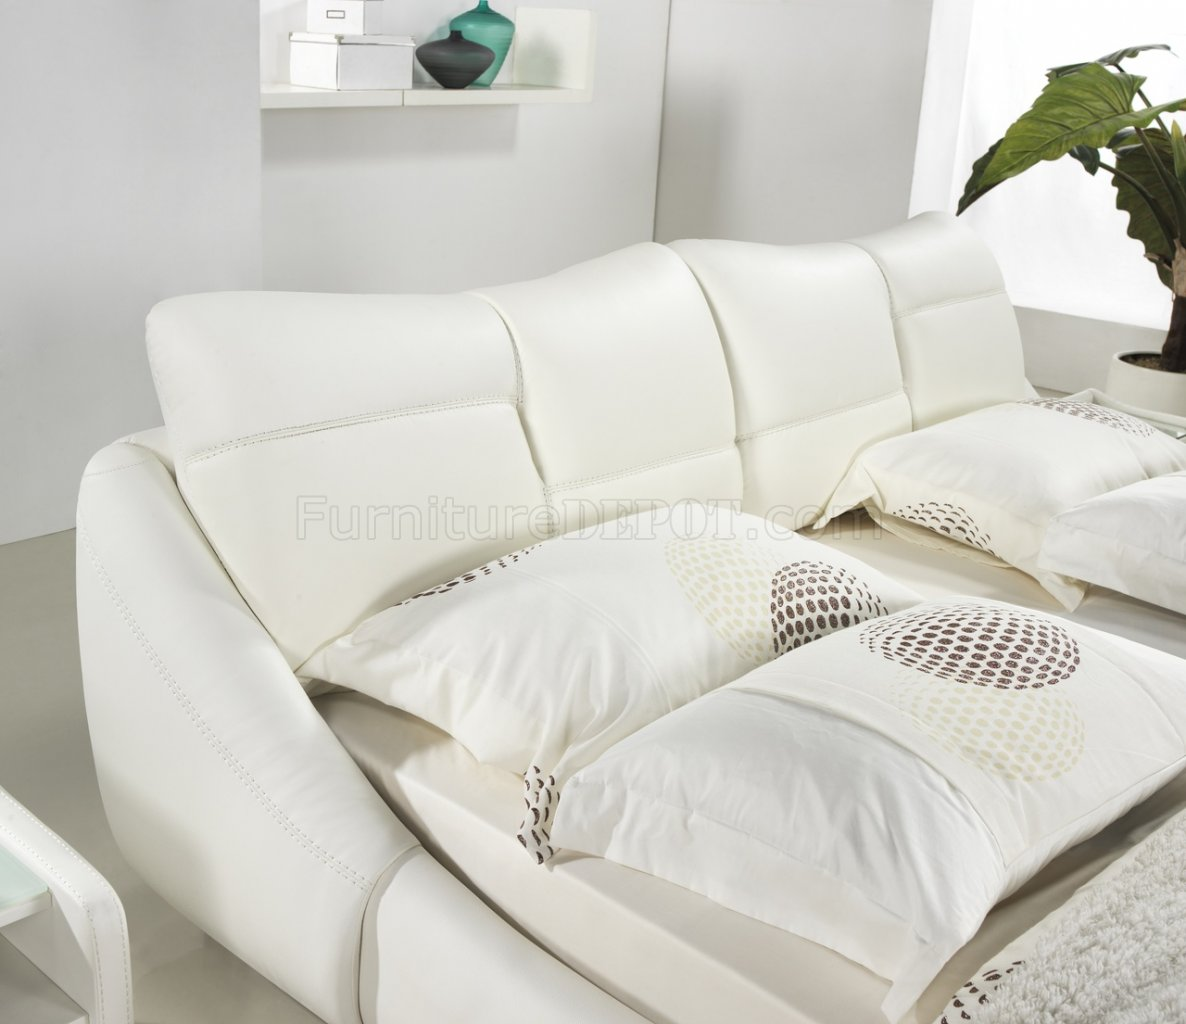 bianca futon sofa bed review 4087 modern leather sectional with recliners reviews mirage in white half by casabianca